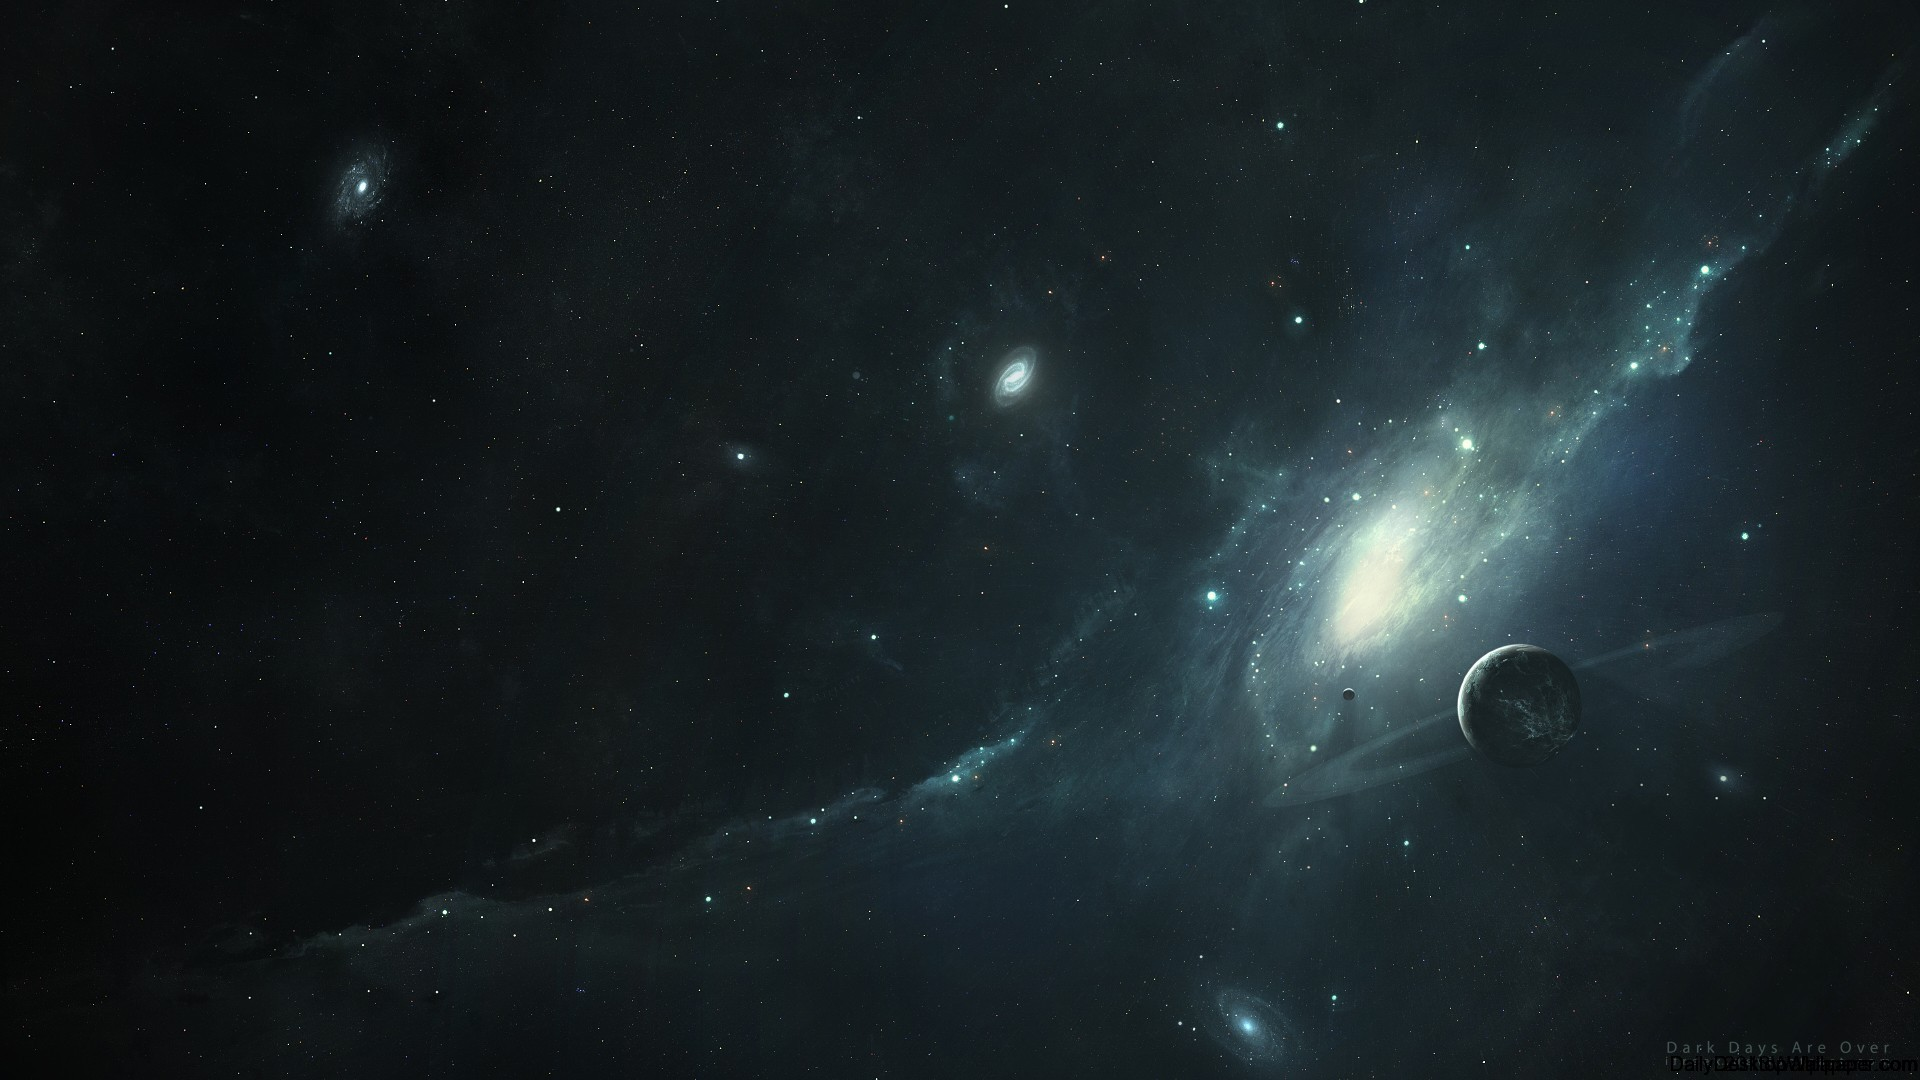 Outer space wallpaper hd wallpapers for The outer space